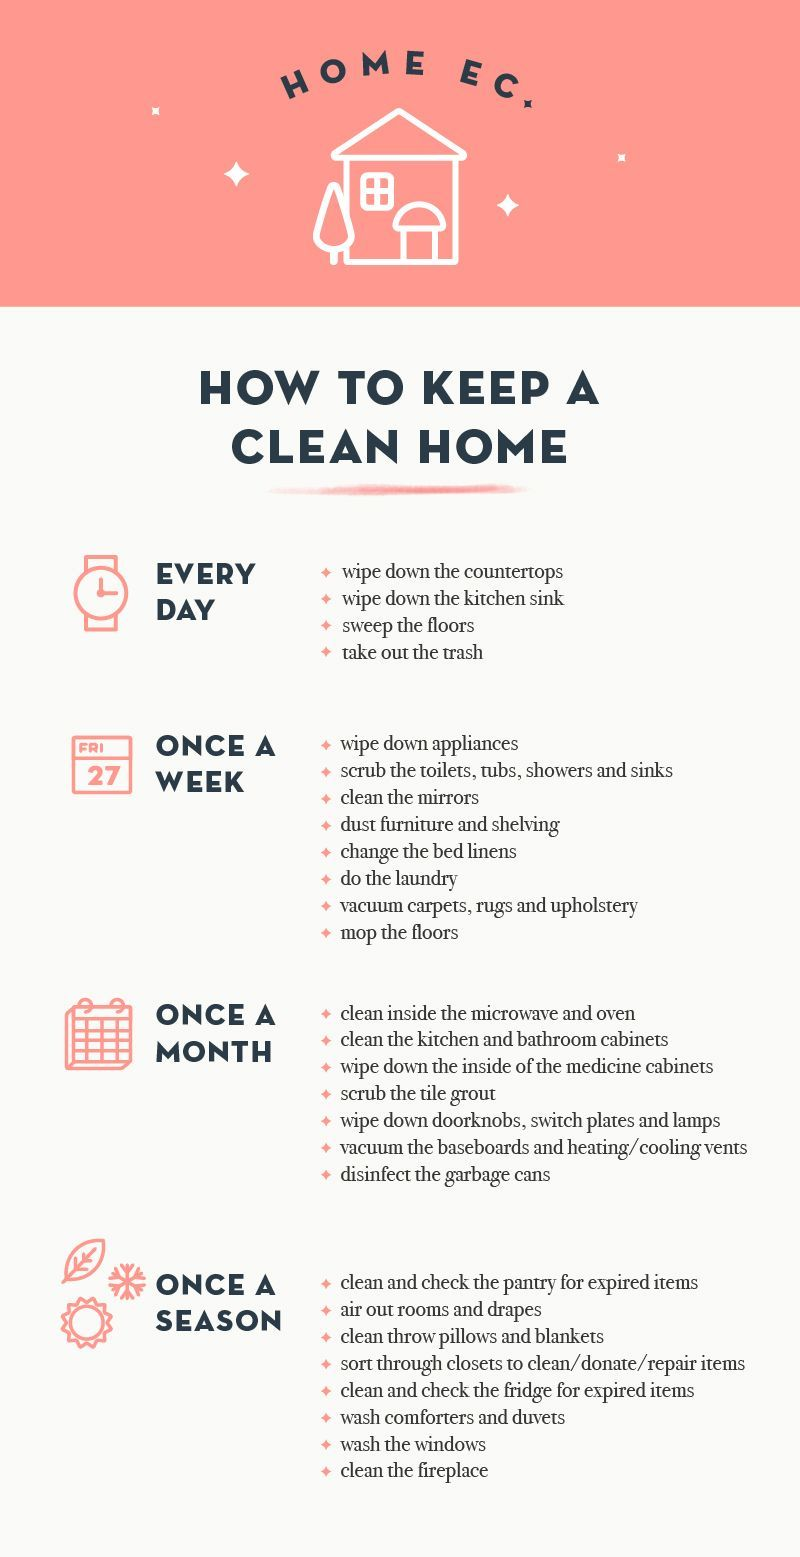 Spring Is Finally Upon Us Which Means It S Time To Start Getting Our Homes Ready For The Summer Here Are Some Top Tips On How Keep A Clean Home